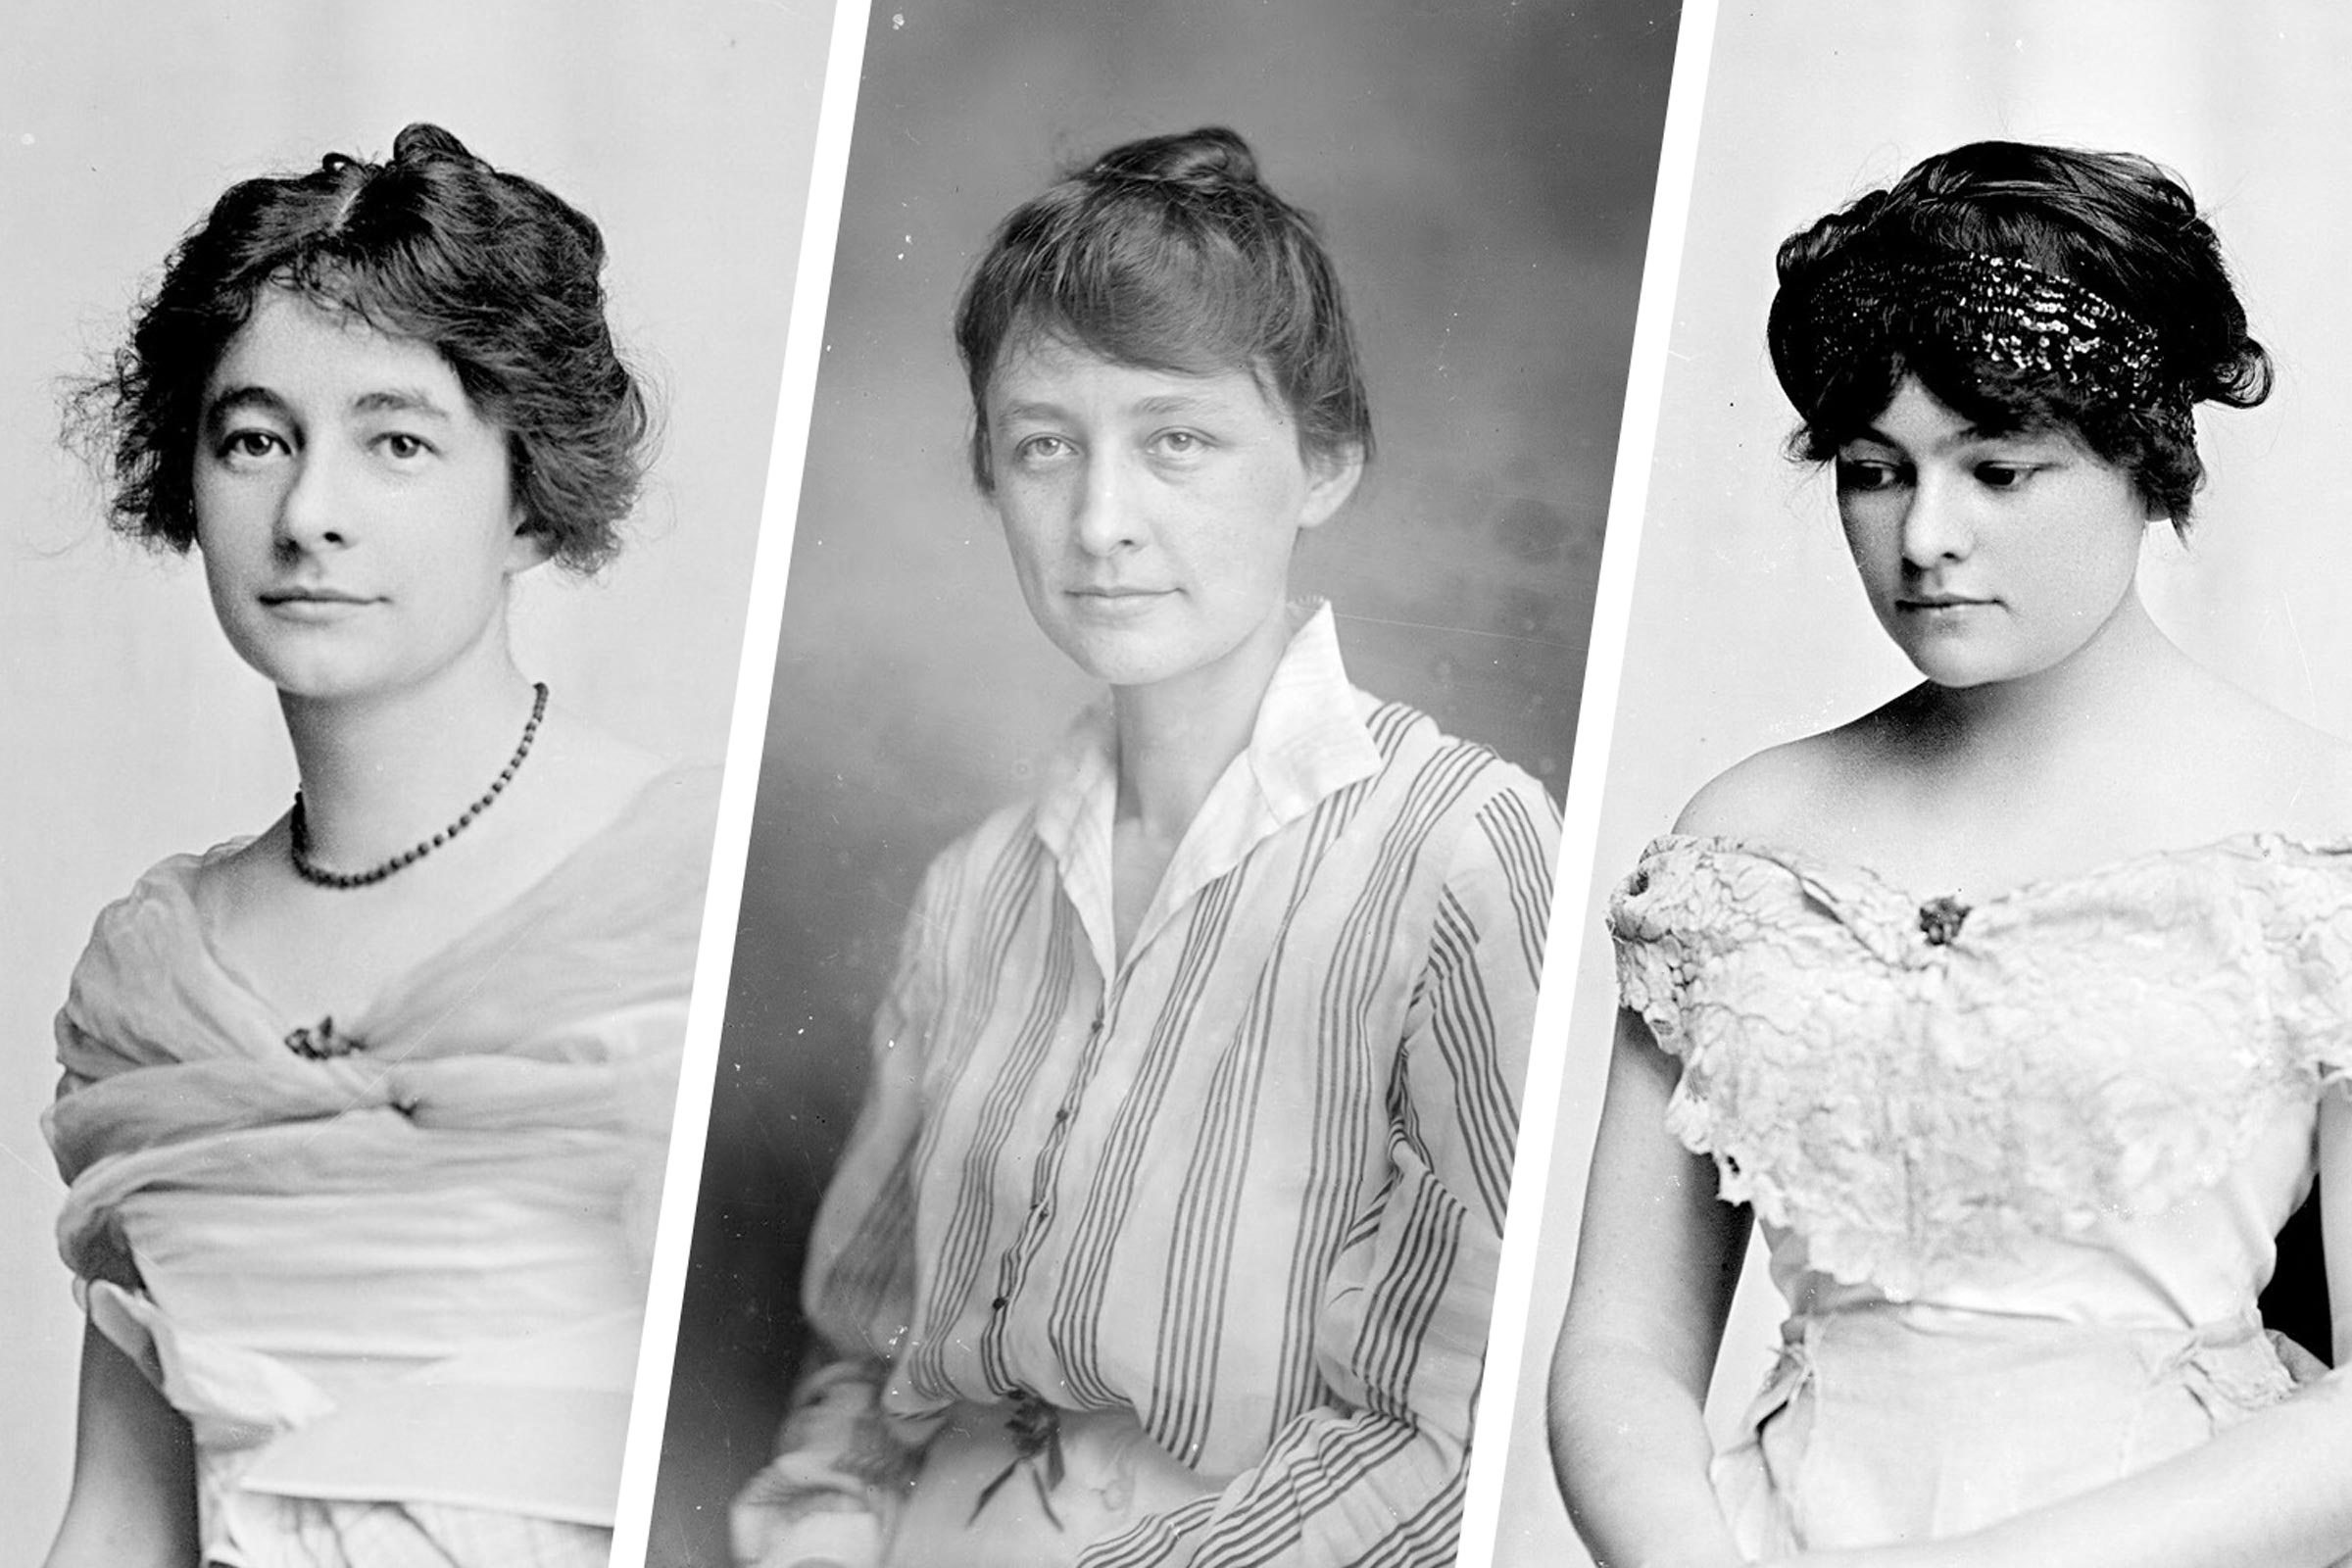 Left to right: Ida, Georgia and Anita O'Keeffe. In these photographs by Rufus Holsinger, Georgia O'Keeffe's style clearly stands apart from that of her two sisters.